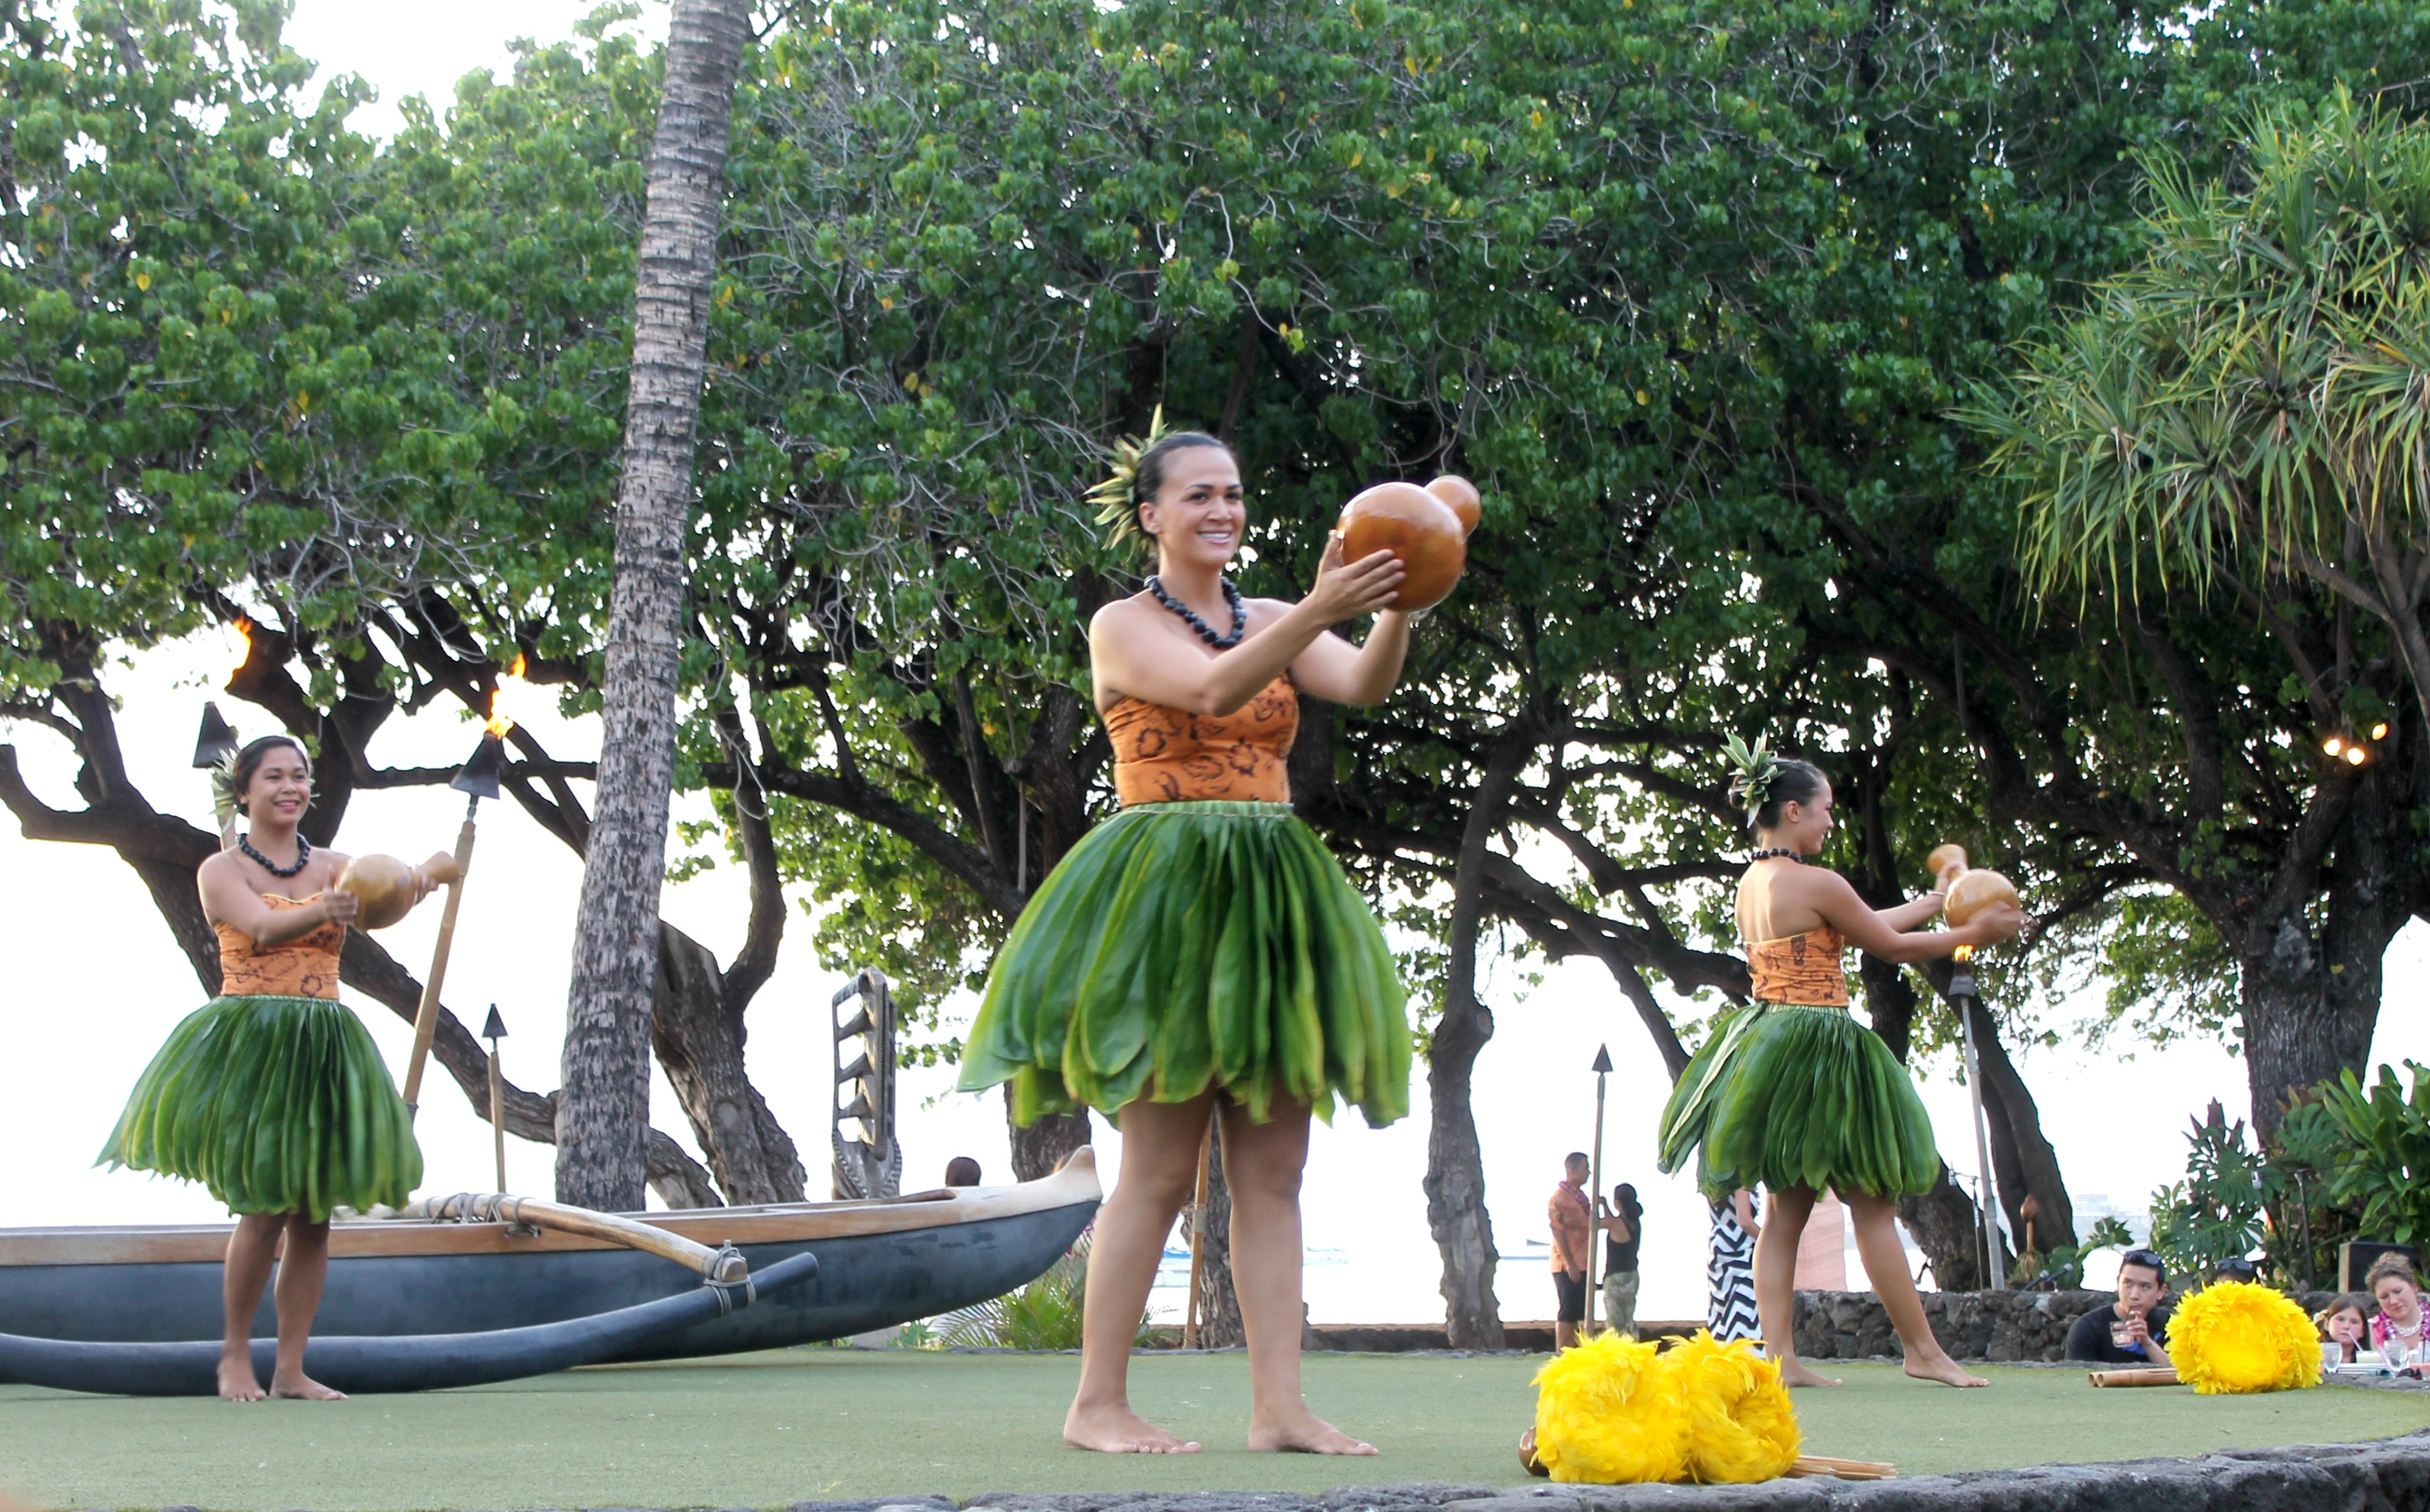 The Old Lahaina Luau Dancers